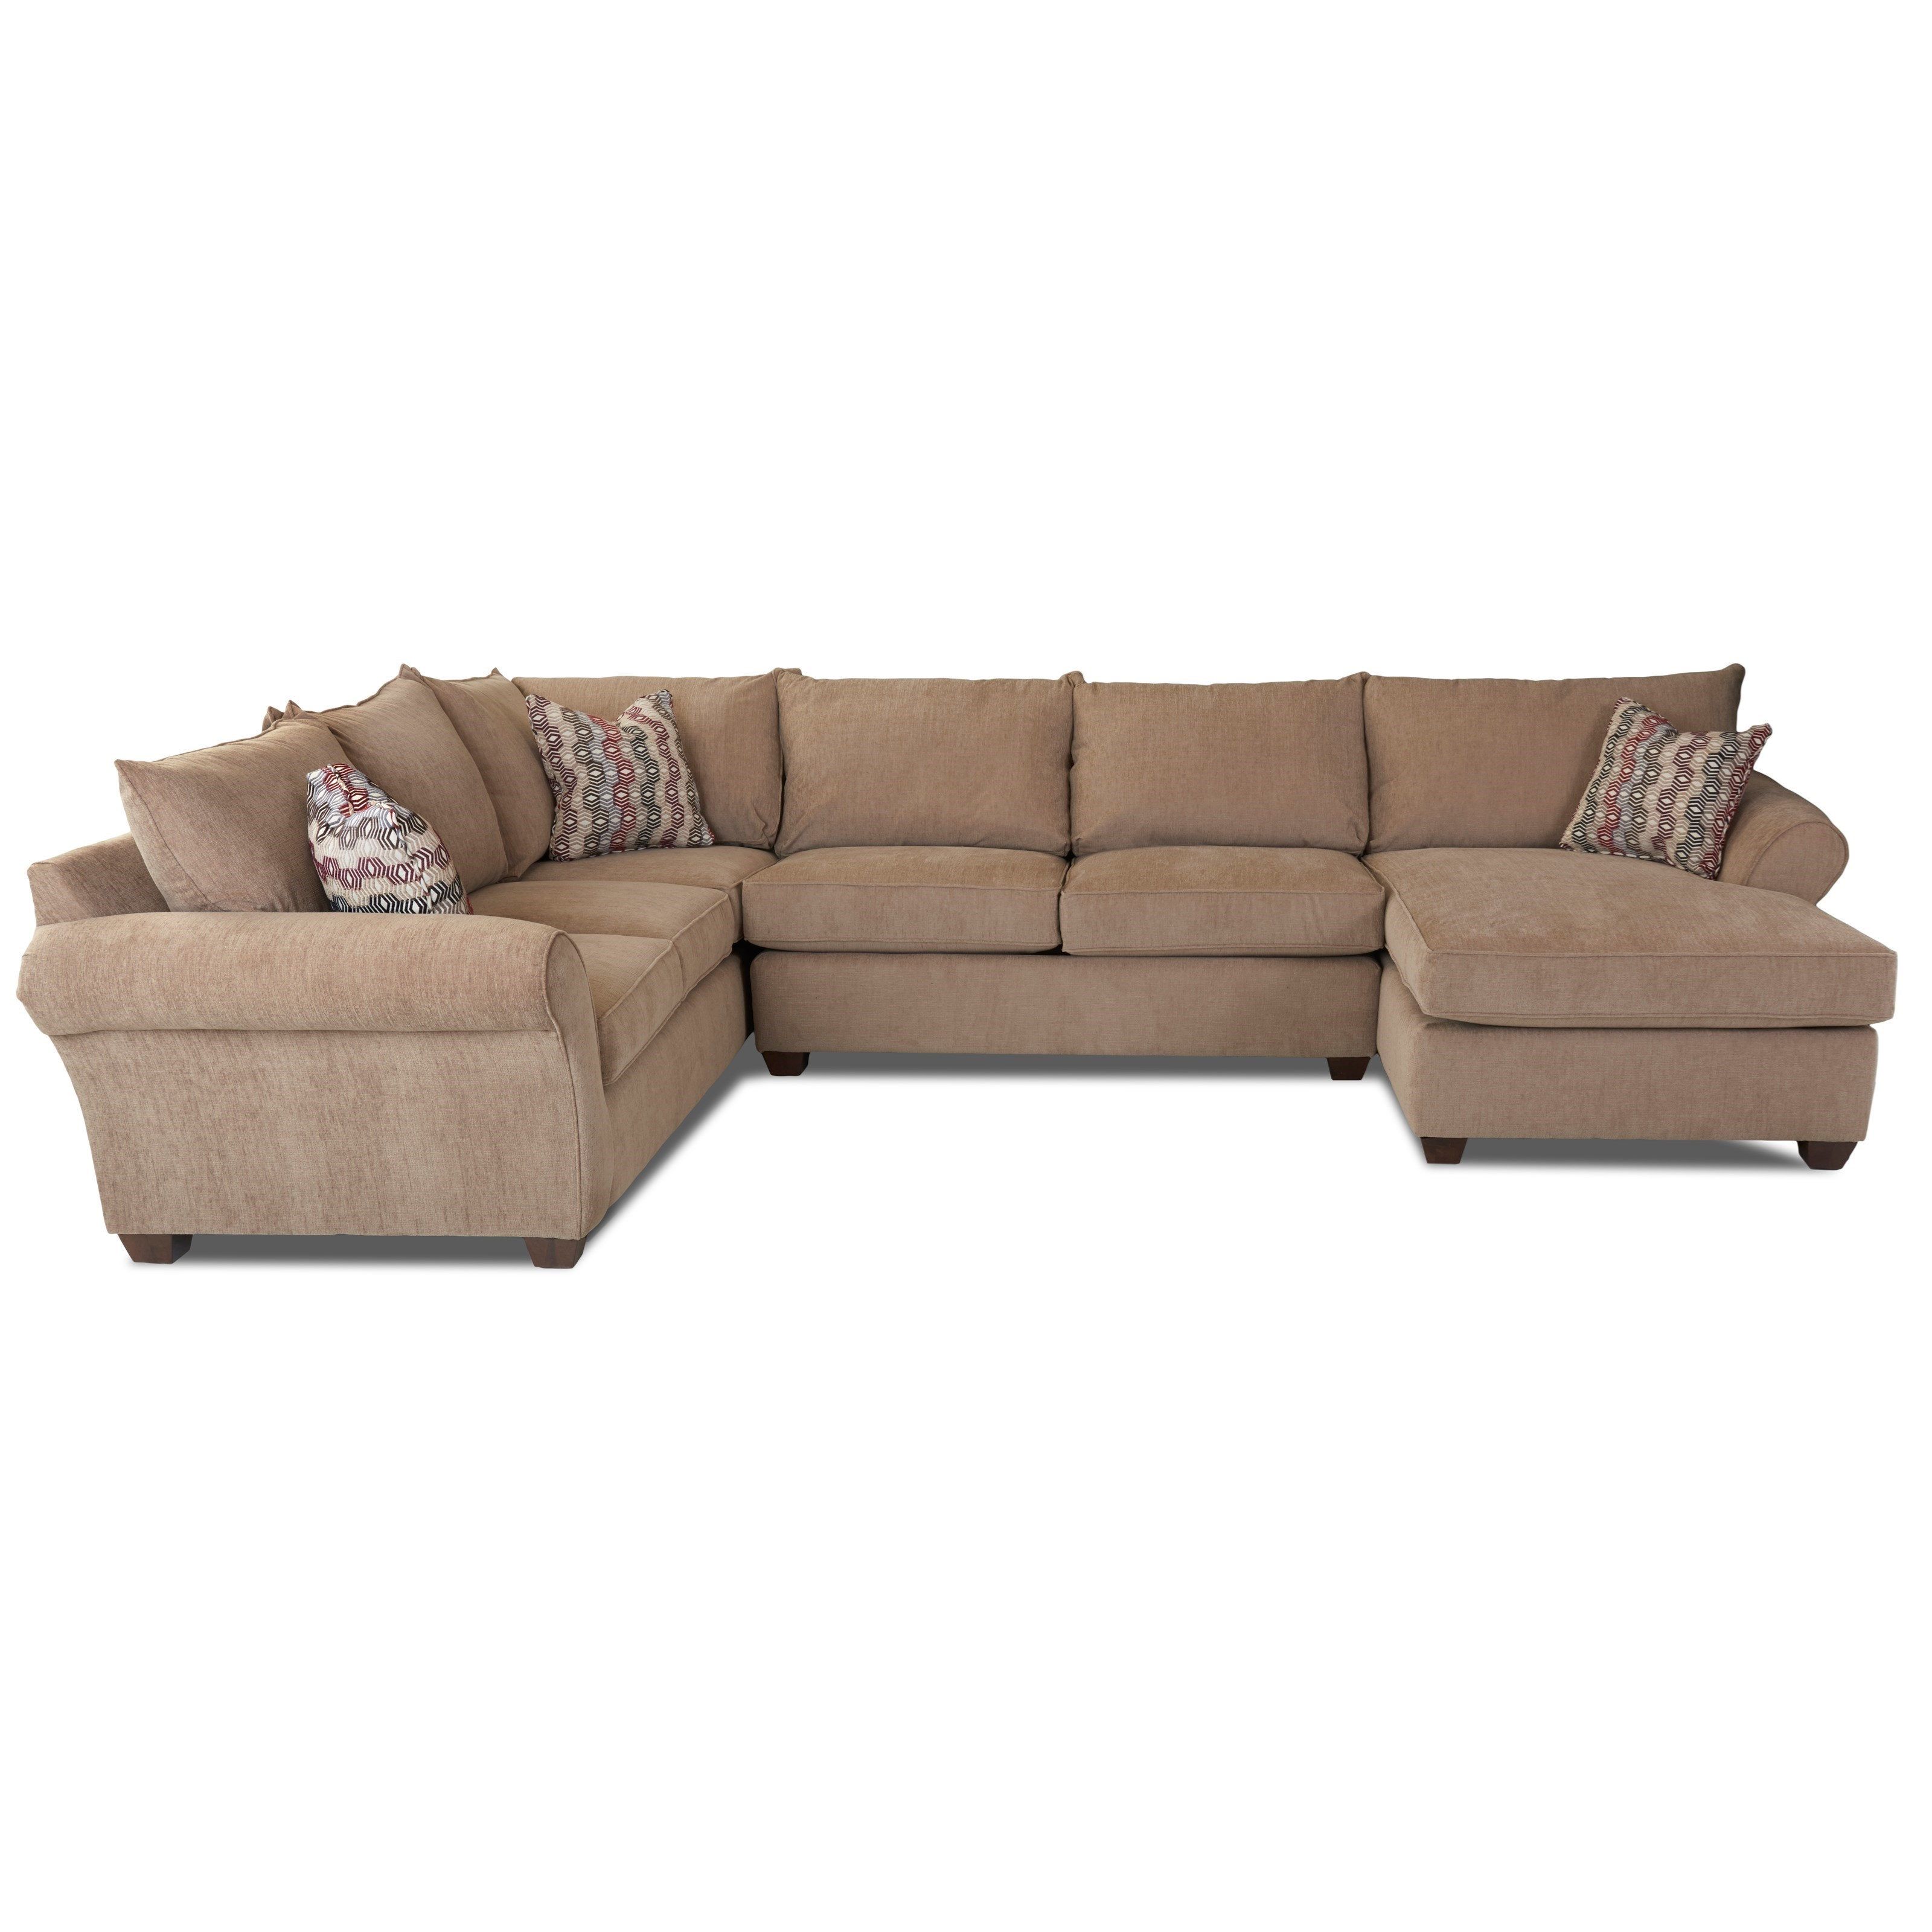 Fletcher Sectional Sofa by Klaussner at Johnny Janosik